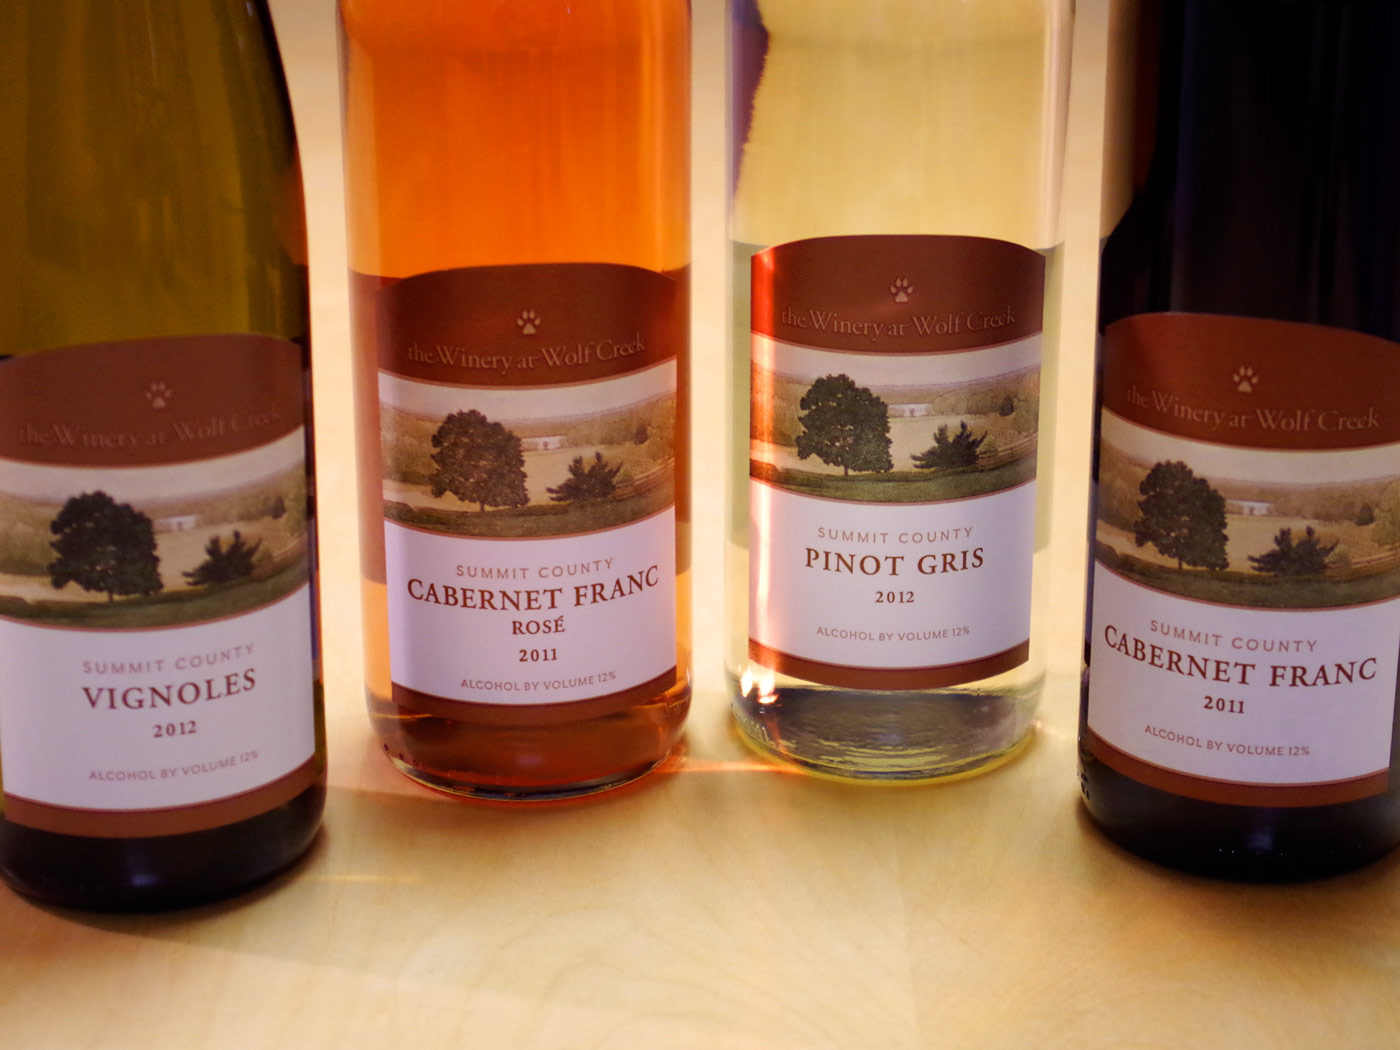 The Winery at Wolf Creek estate wine labels